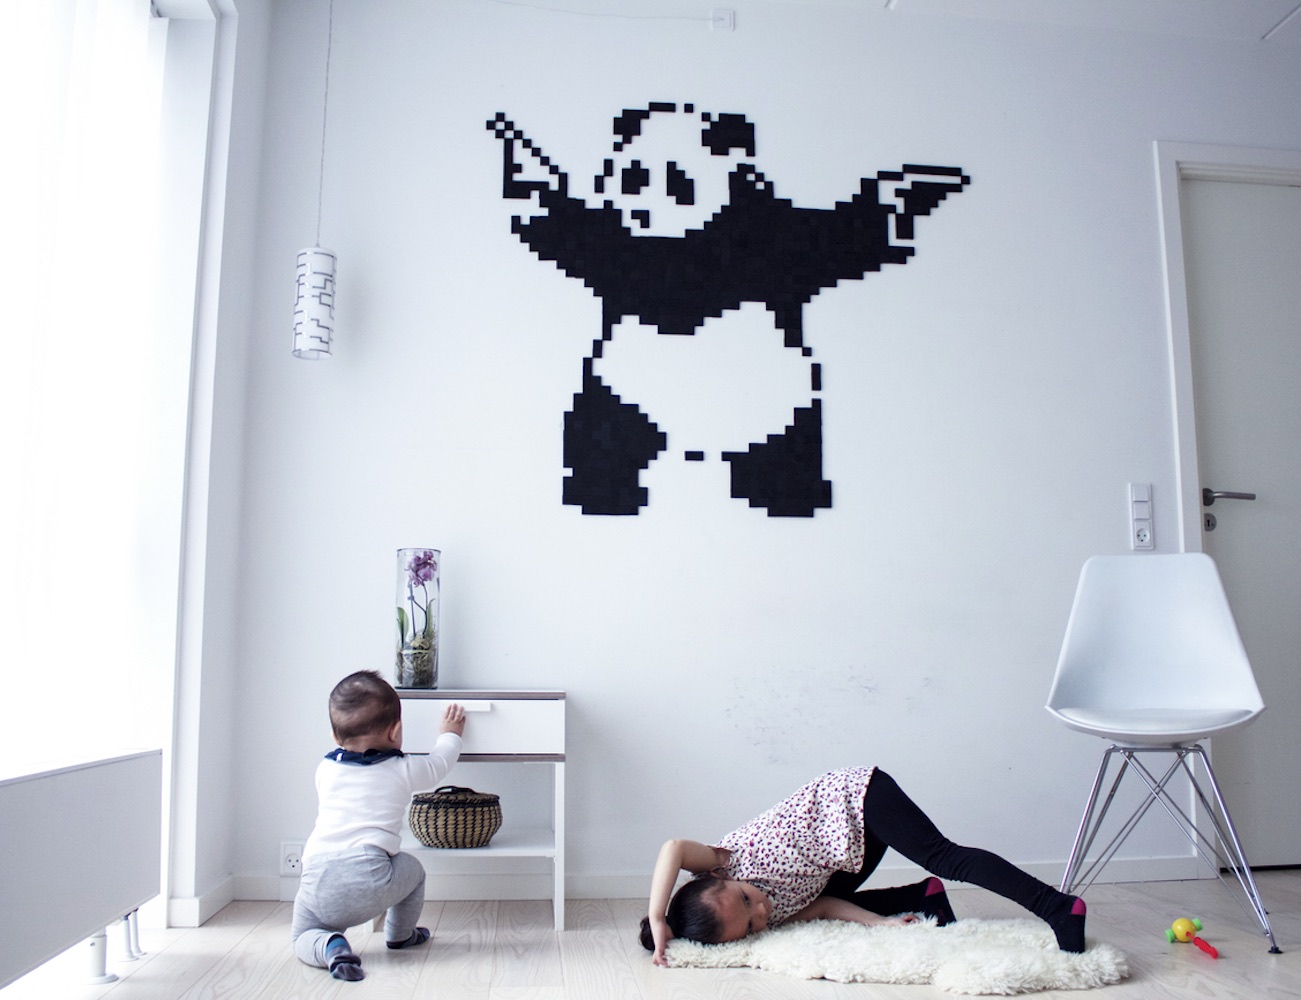 Amazing Wall Art wallz copenhagen - amazing wall art like never before! » gadget flow